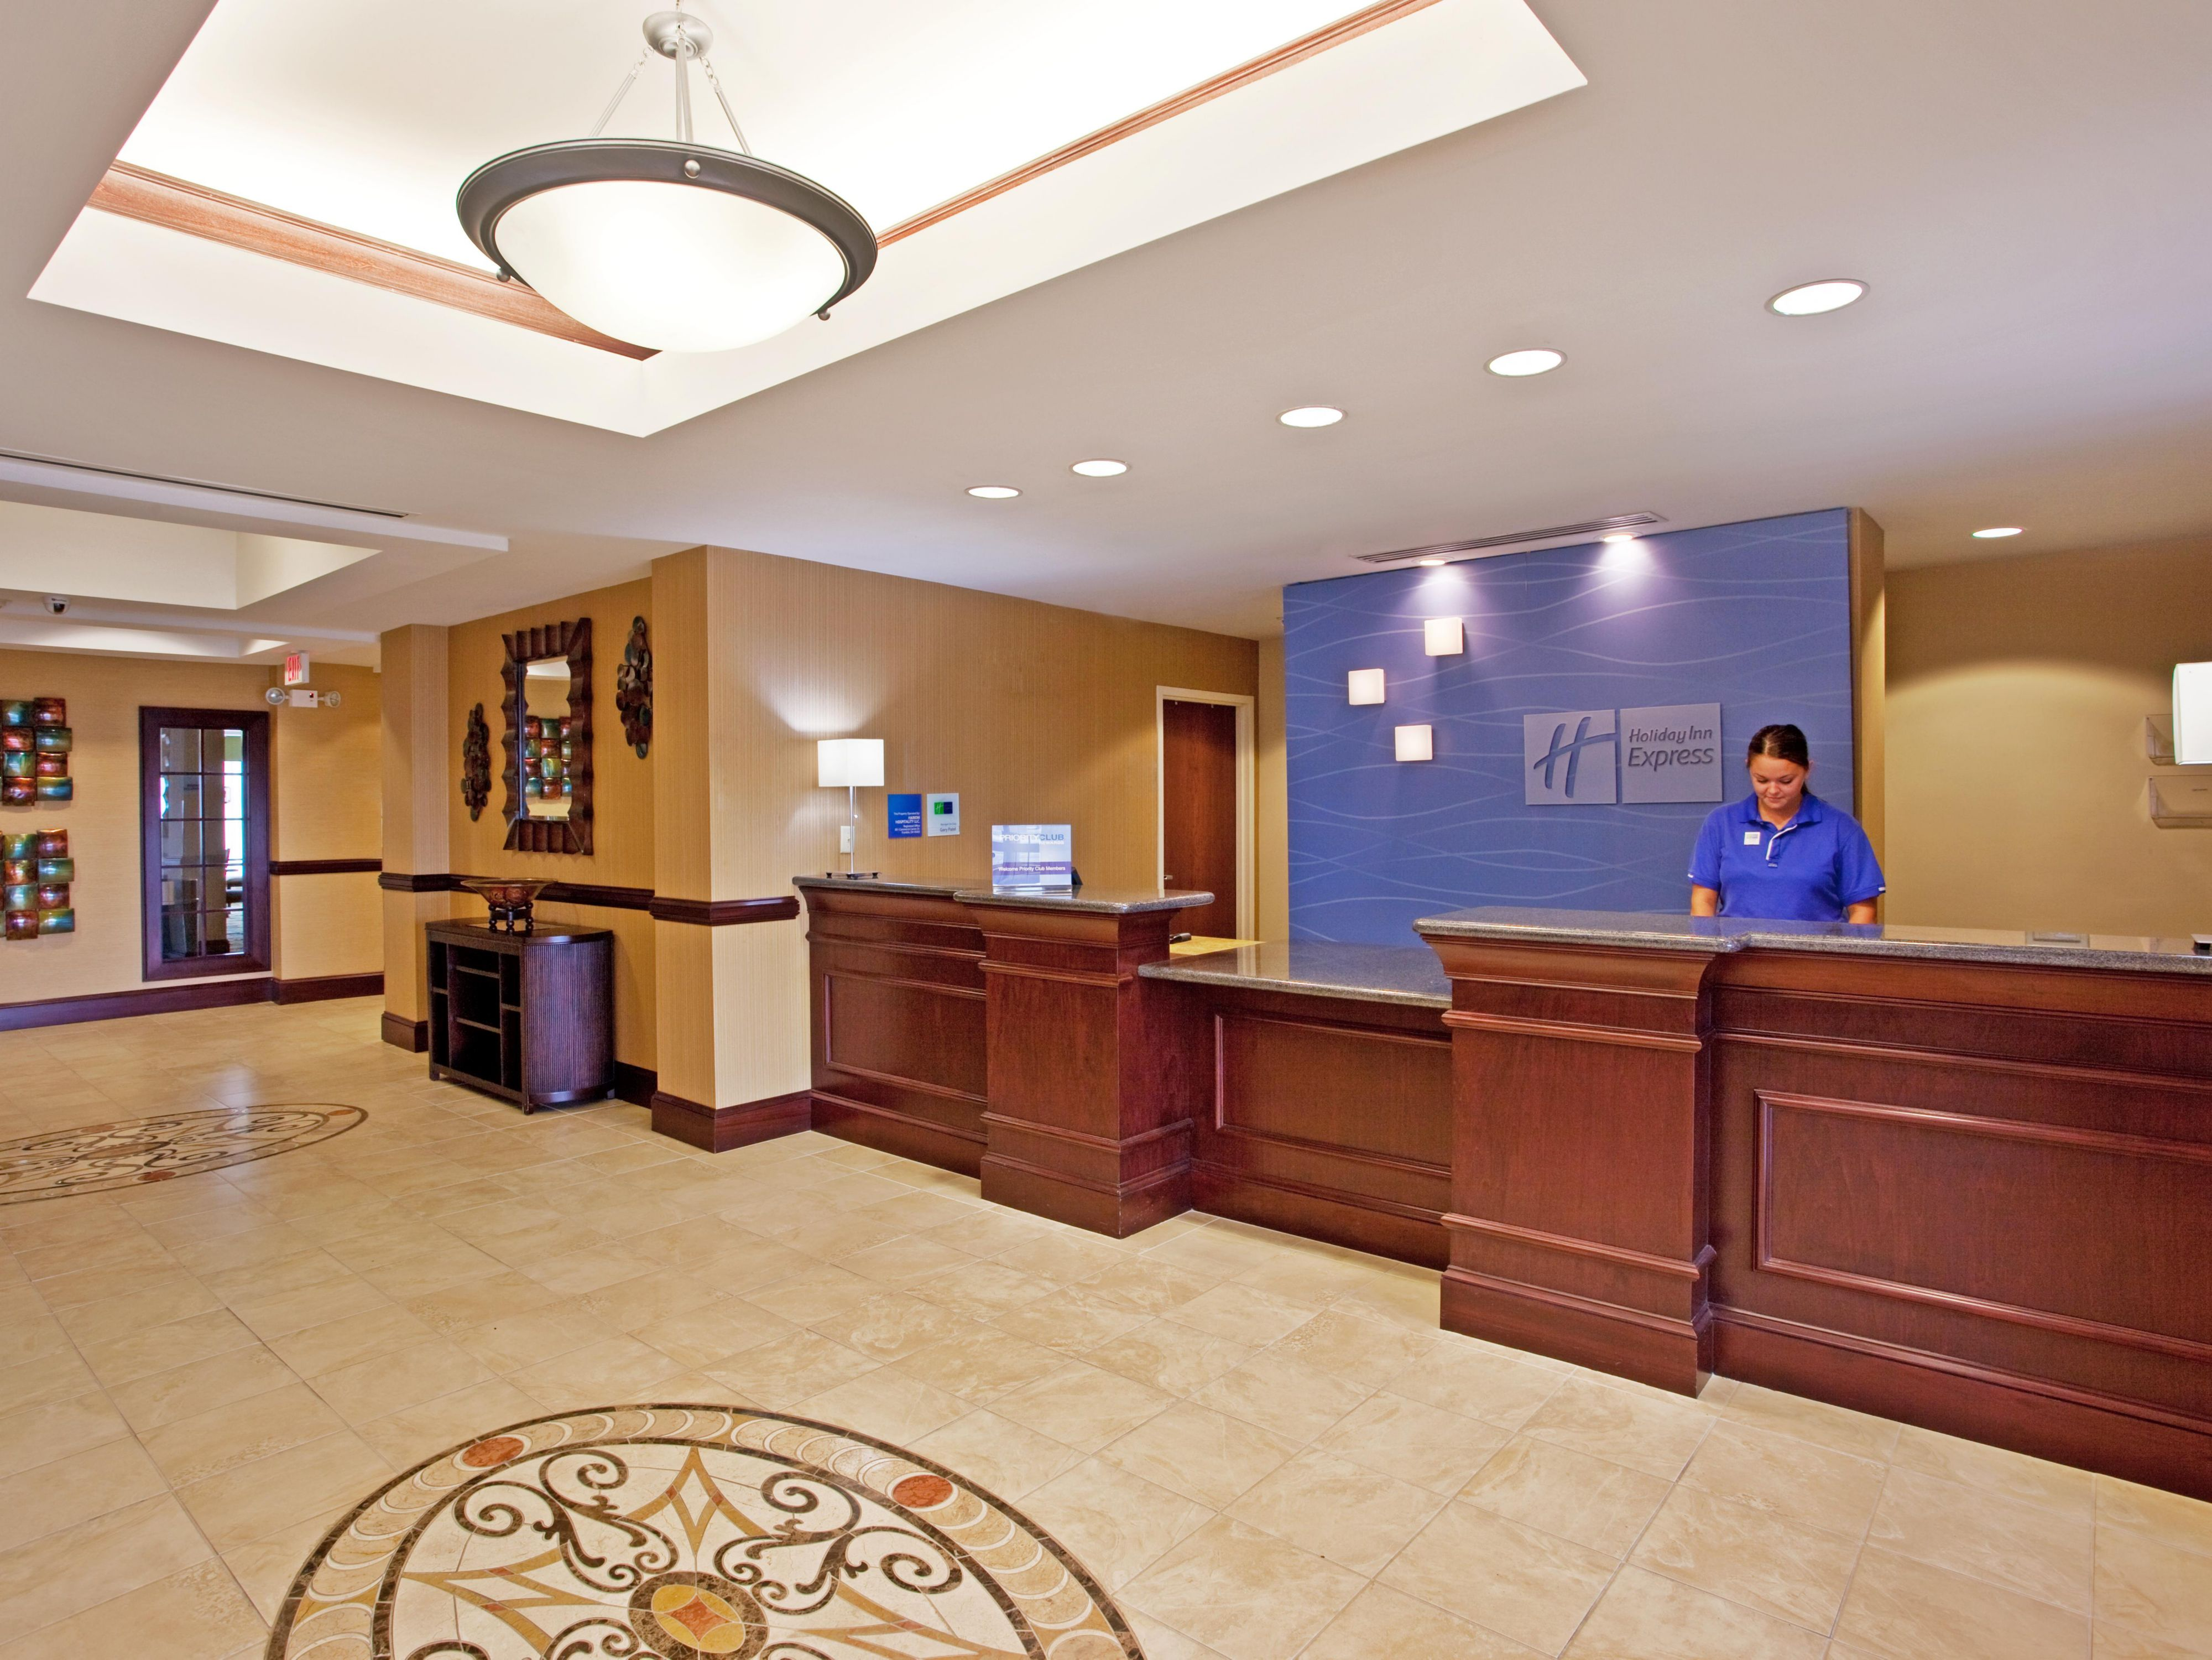 Meet guests at Holiday Inn Express Franklin Ohio's spacious lobby